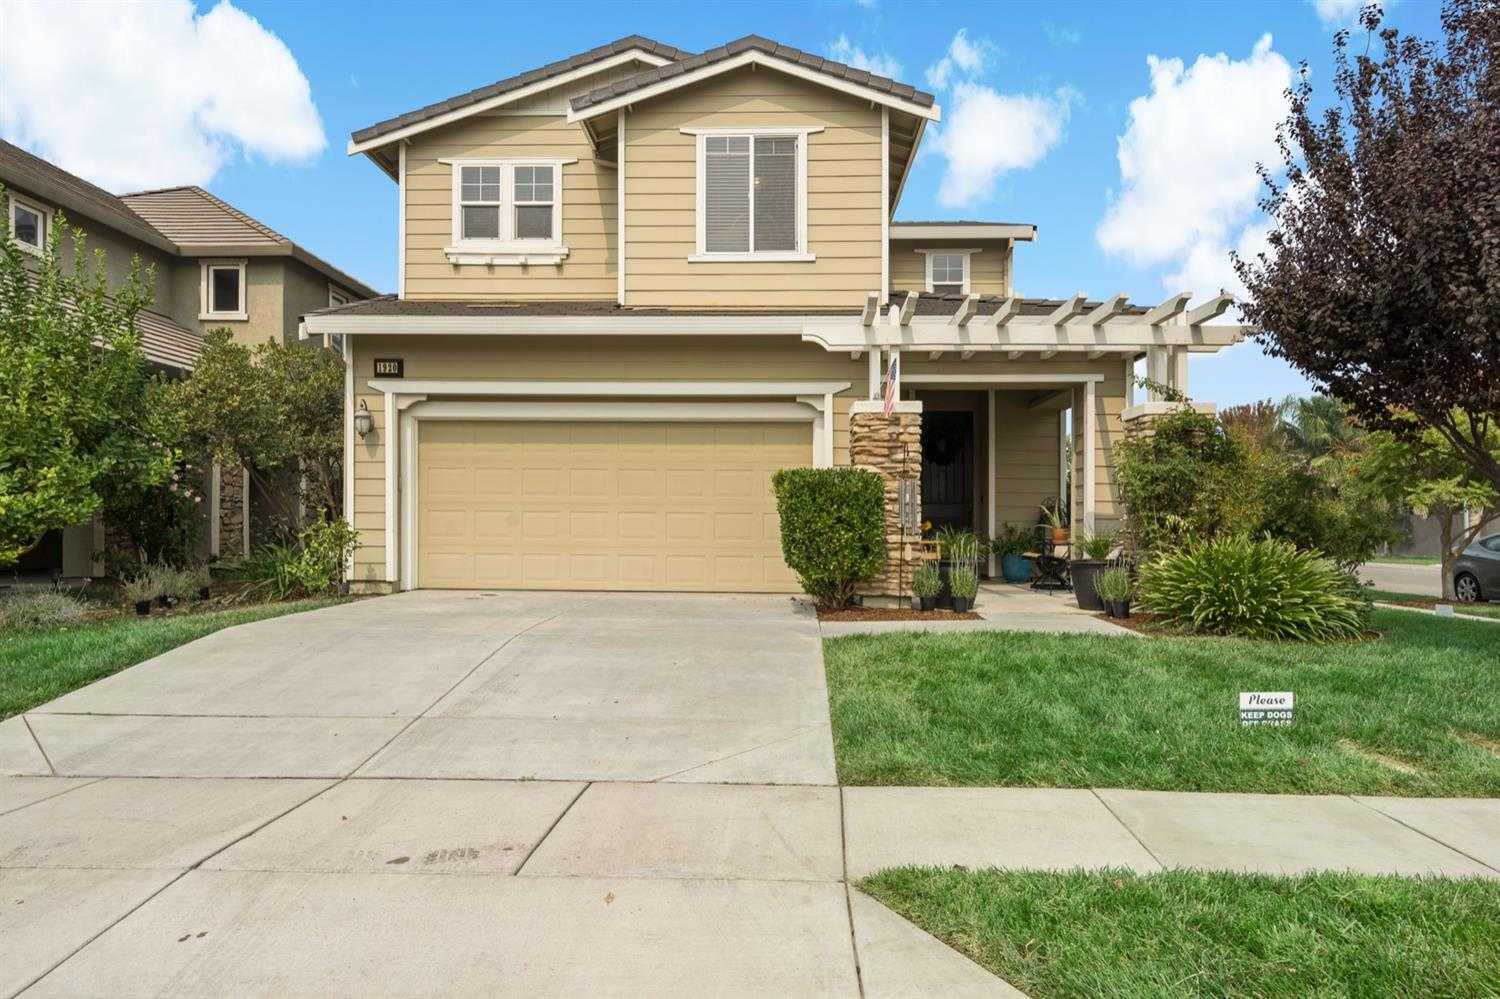 $549,900 - 5Br/3Ba -  for Sale in West Sacramento